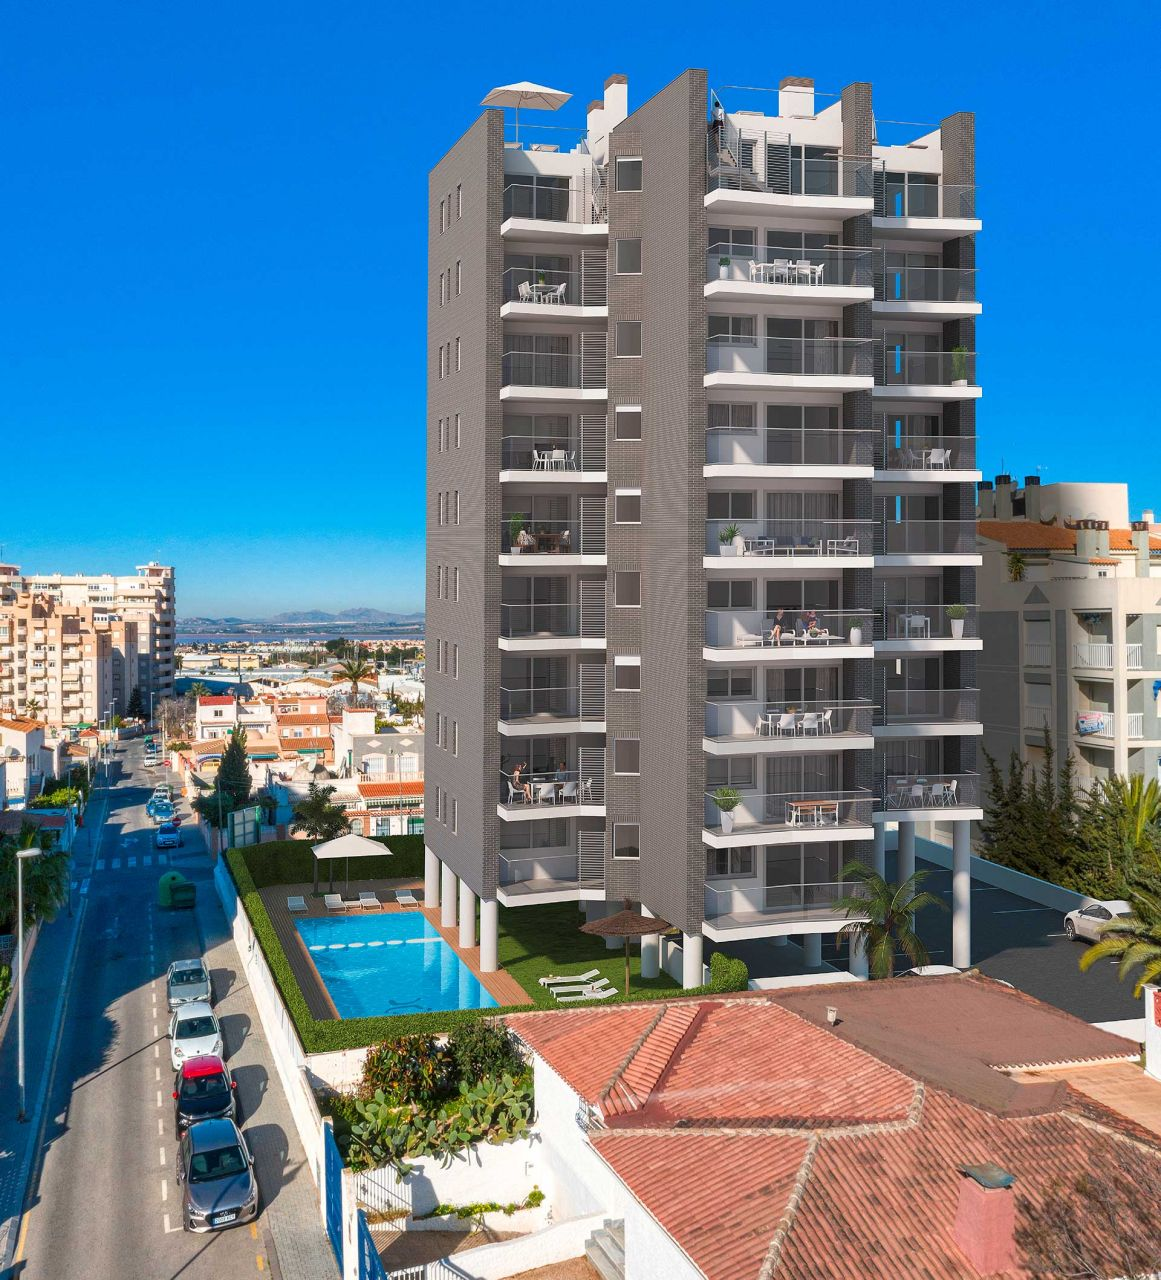 Apartments in the center of Torrevieja 3